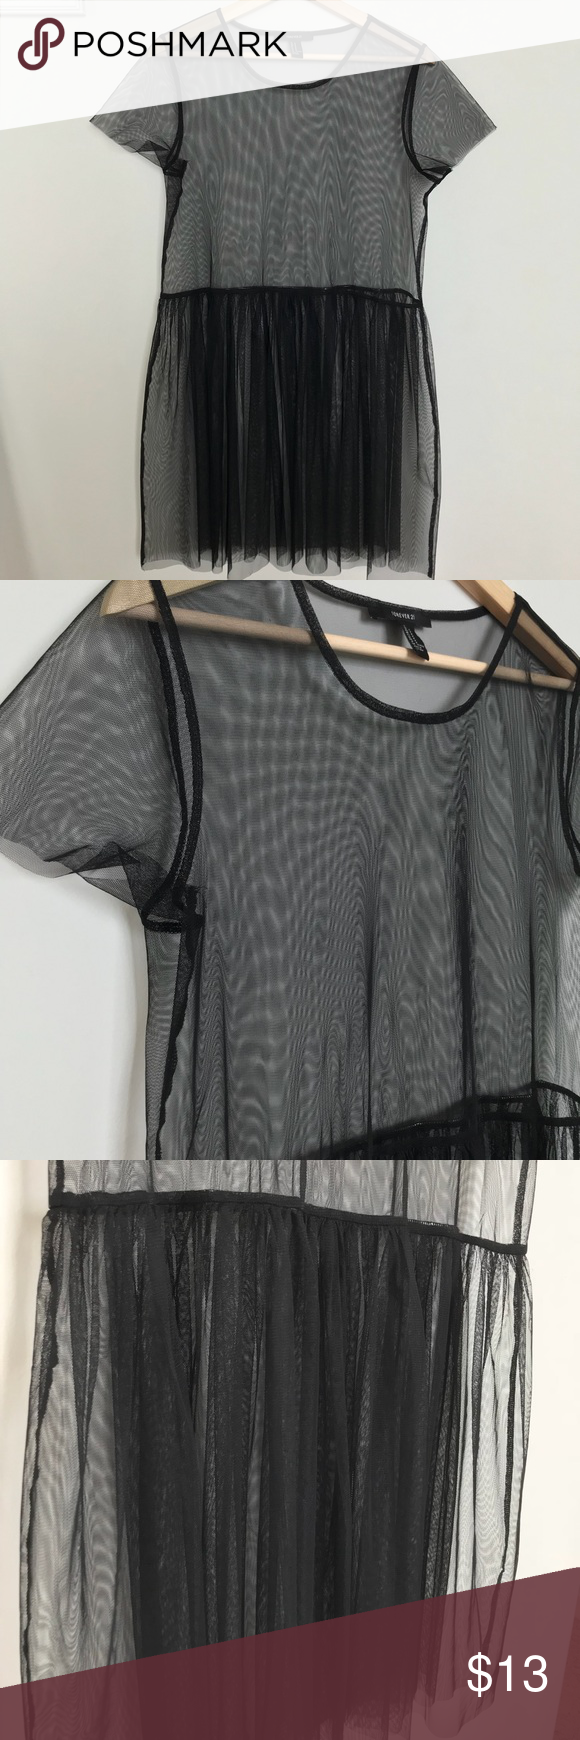 Sheer black babydoll dress this dress can be worn with a black